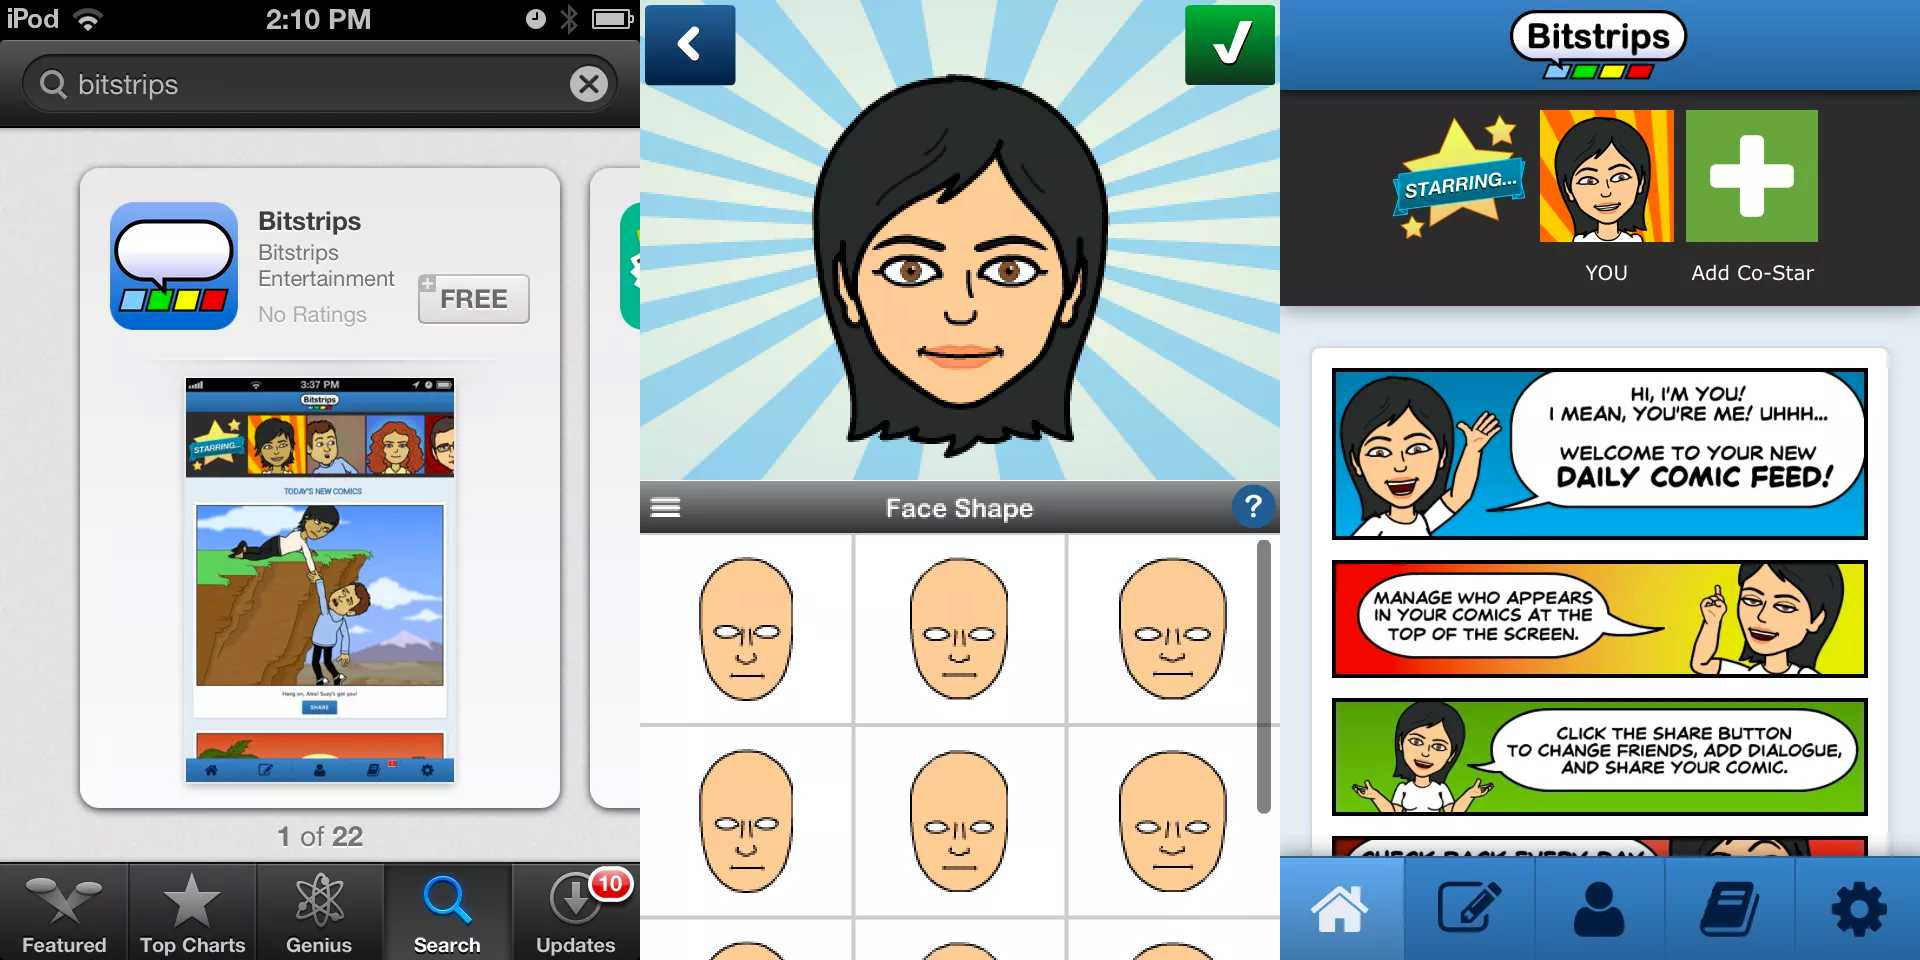 Download screen, Face Shape screen, and Home screen for Bitstrips app on iOS